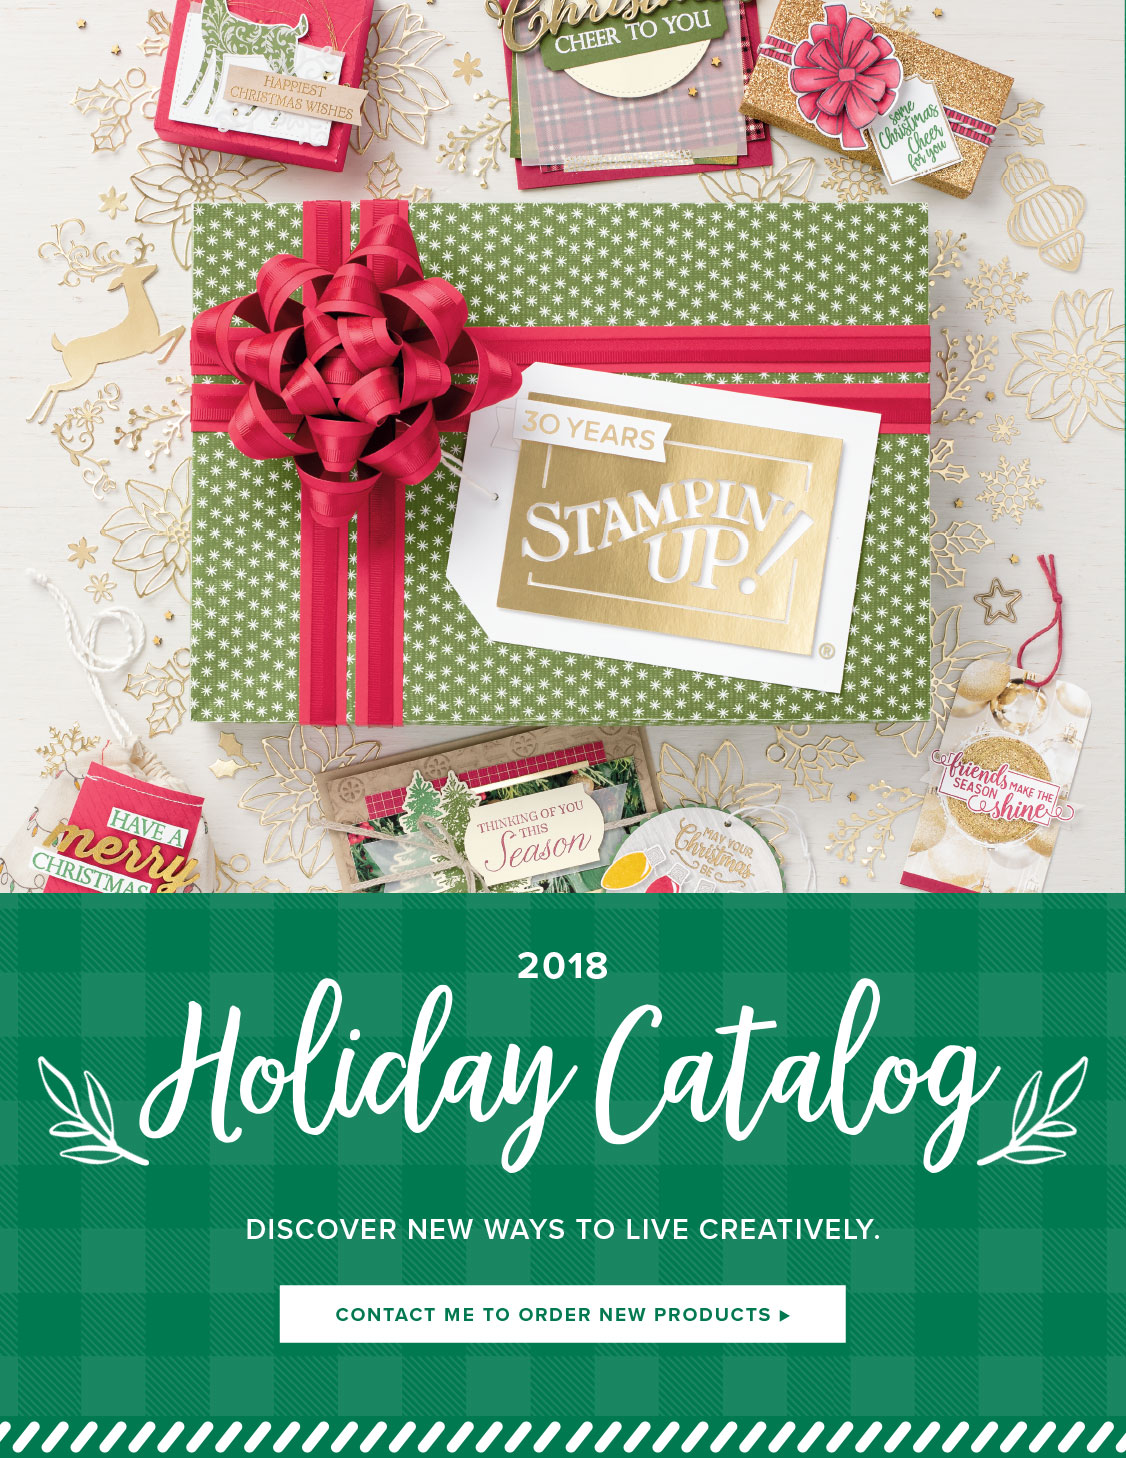 Click the image to view the catalog!